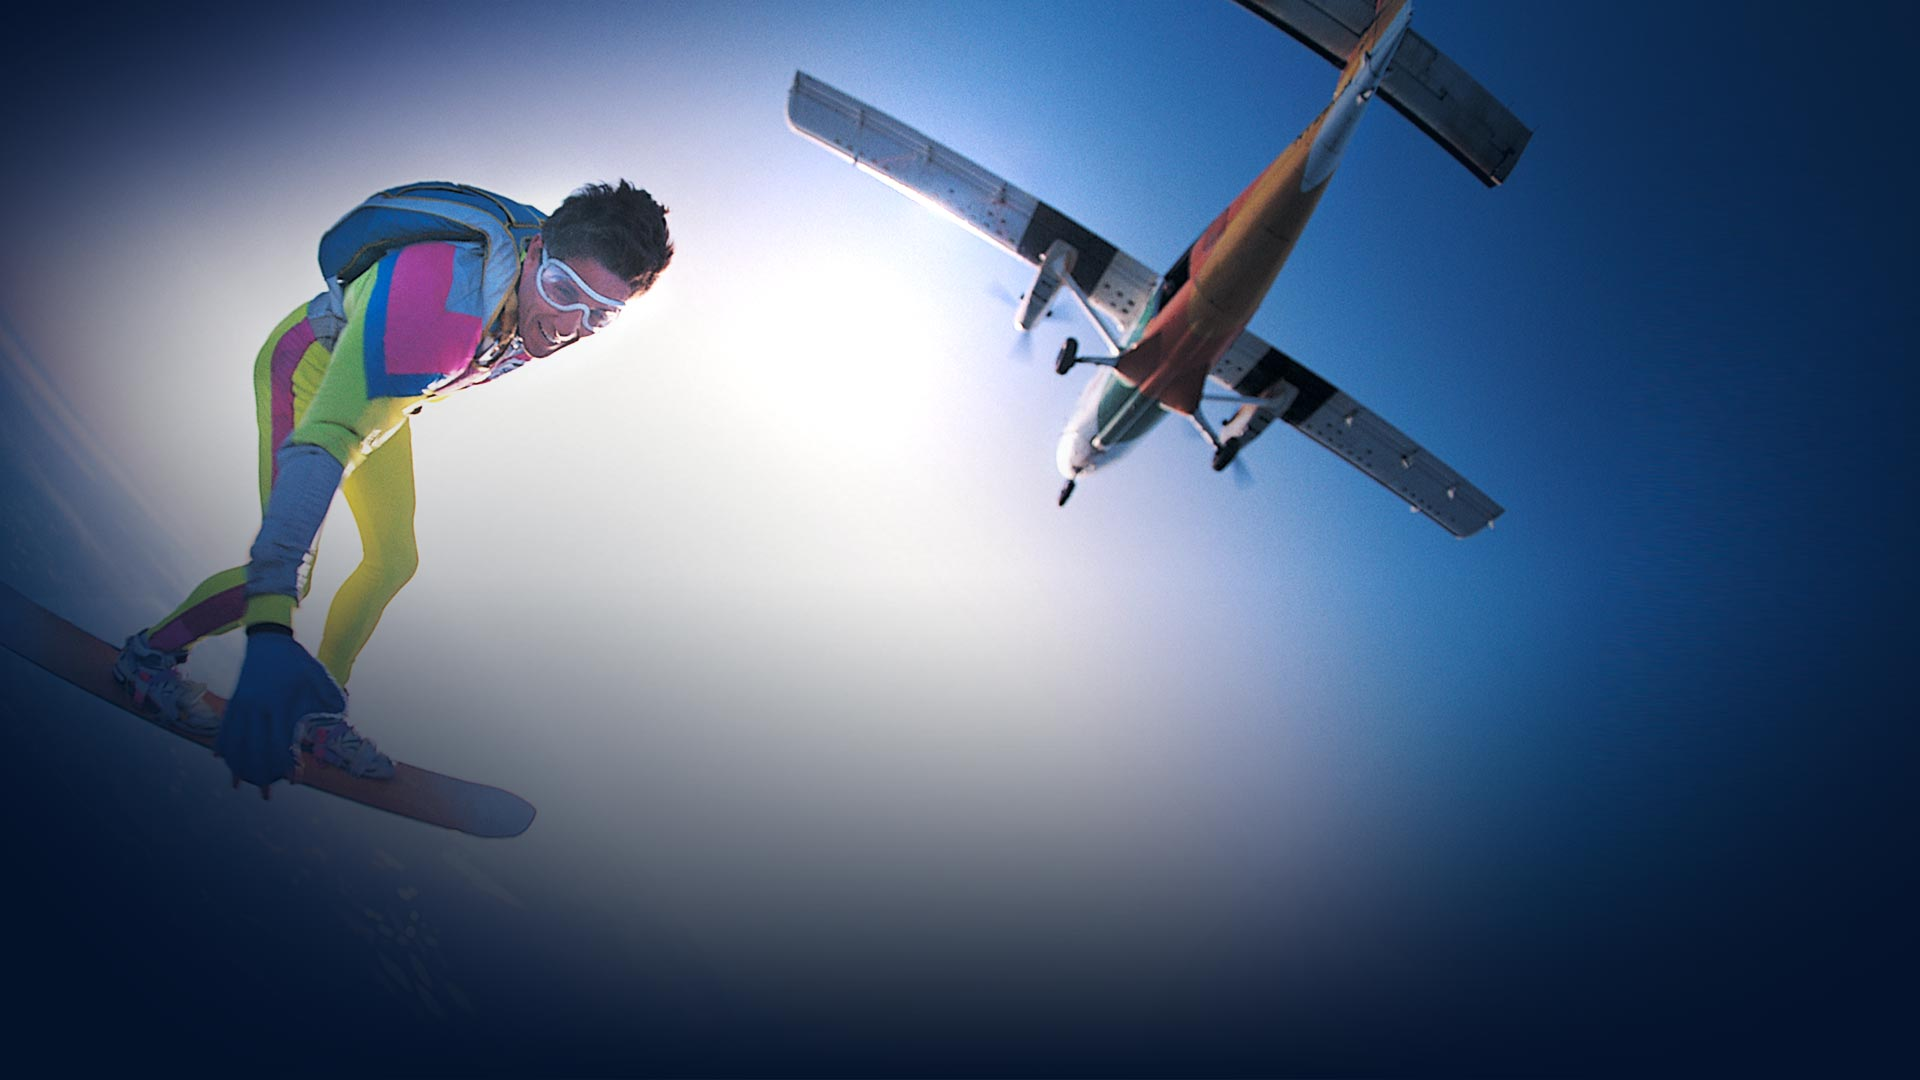 Background Skydive